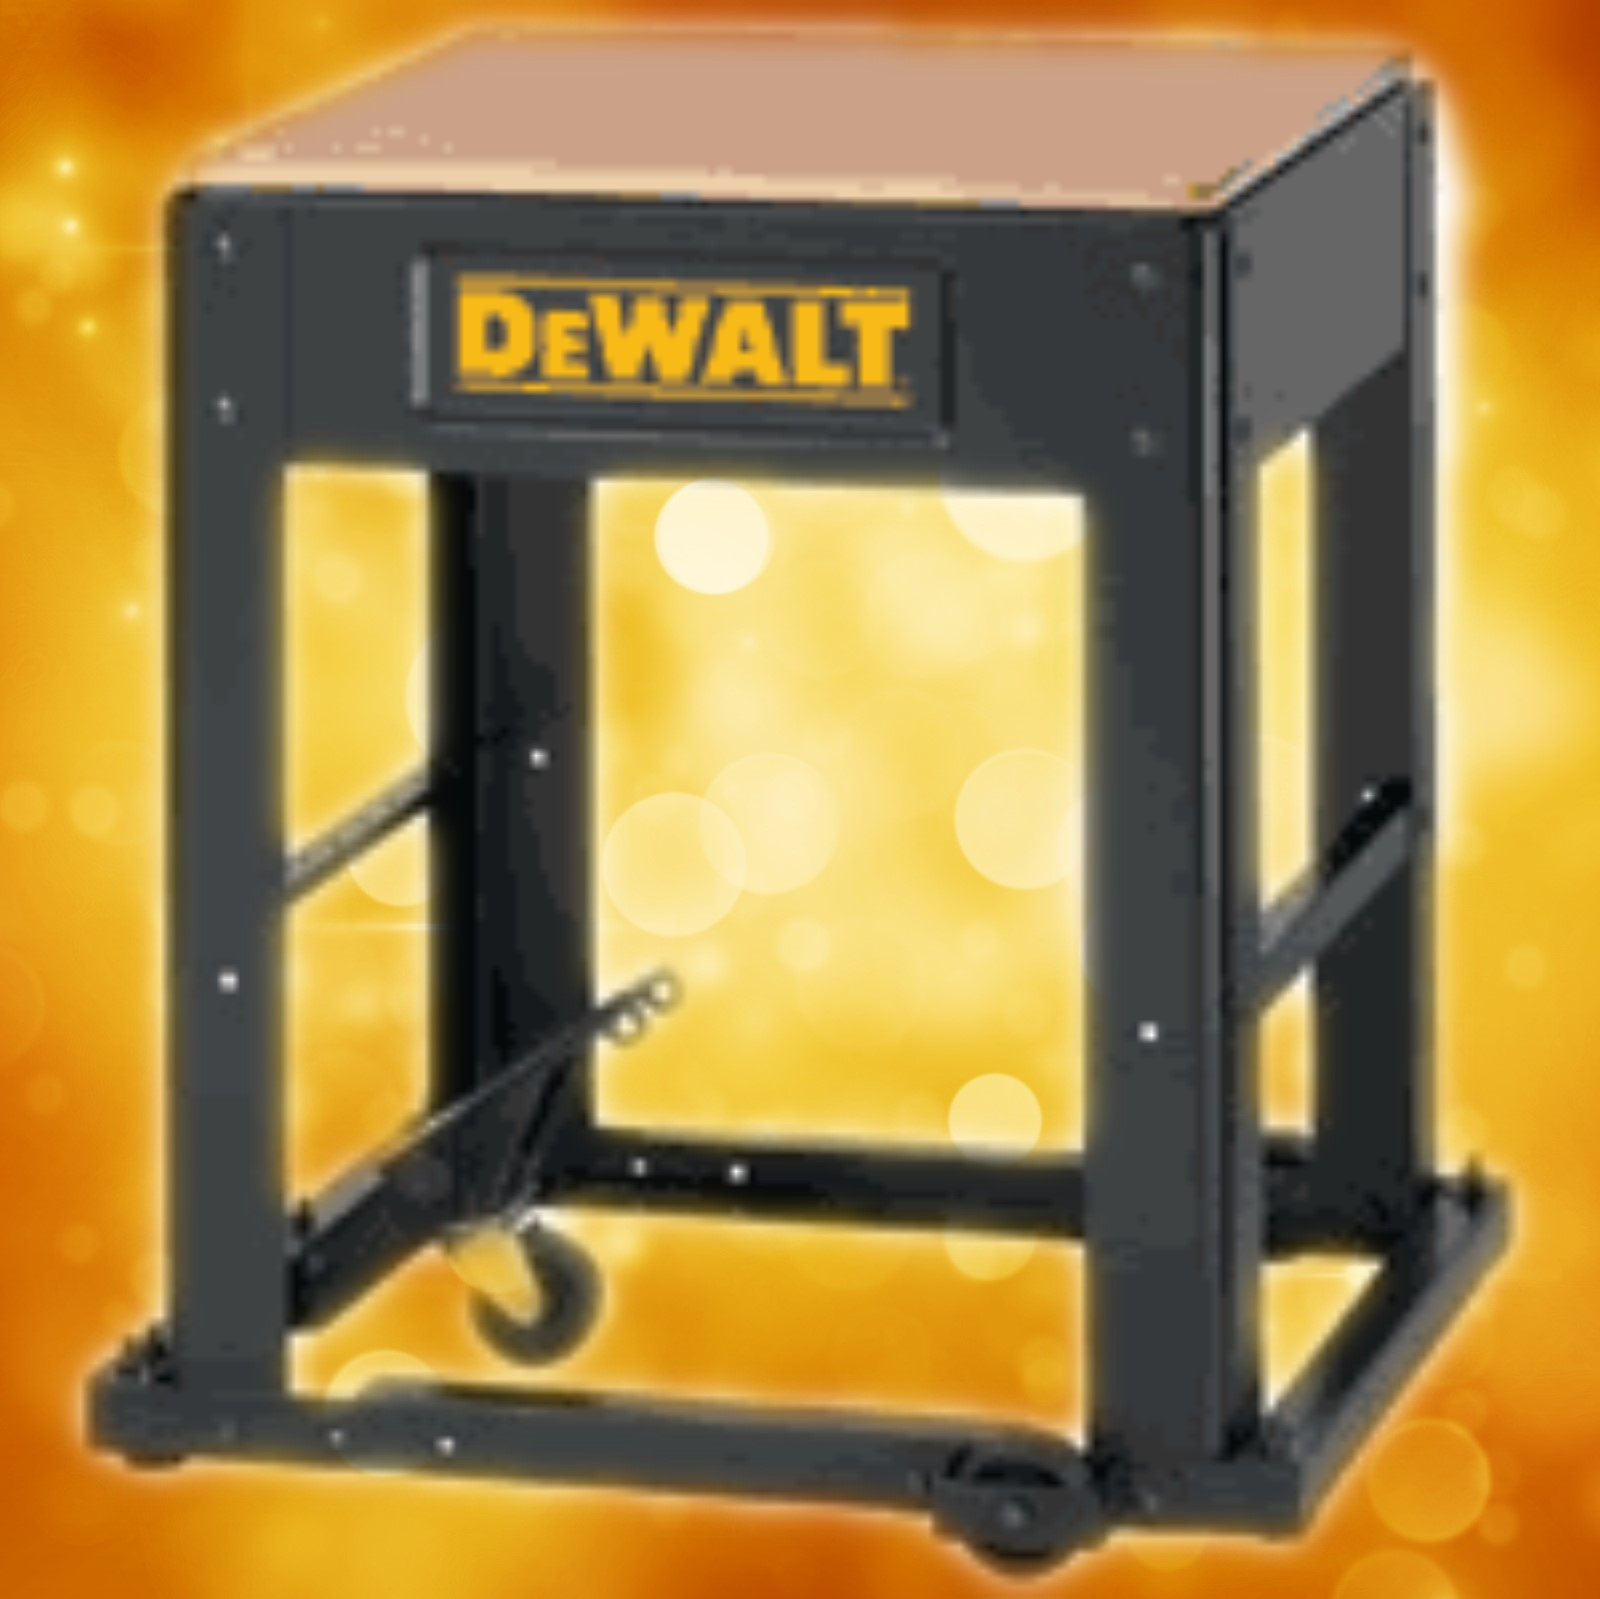 DeWalt Planer Stand for Portable Planers DW7350